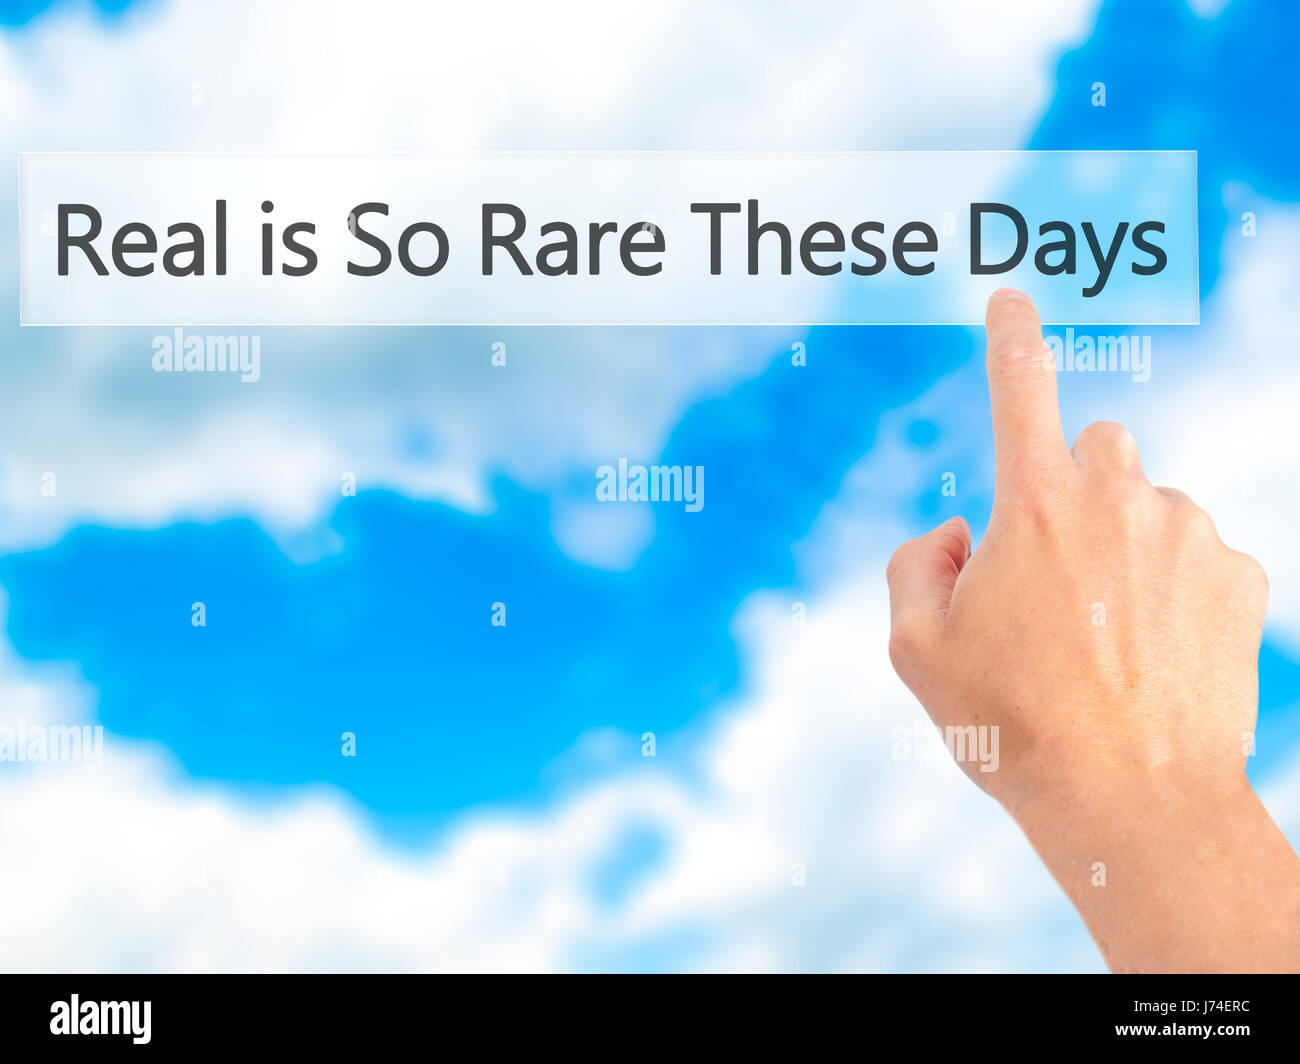 Real is So Rare These Days - Hand pressing a button on blurred background concept . Business, technology, internet - Stock Image